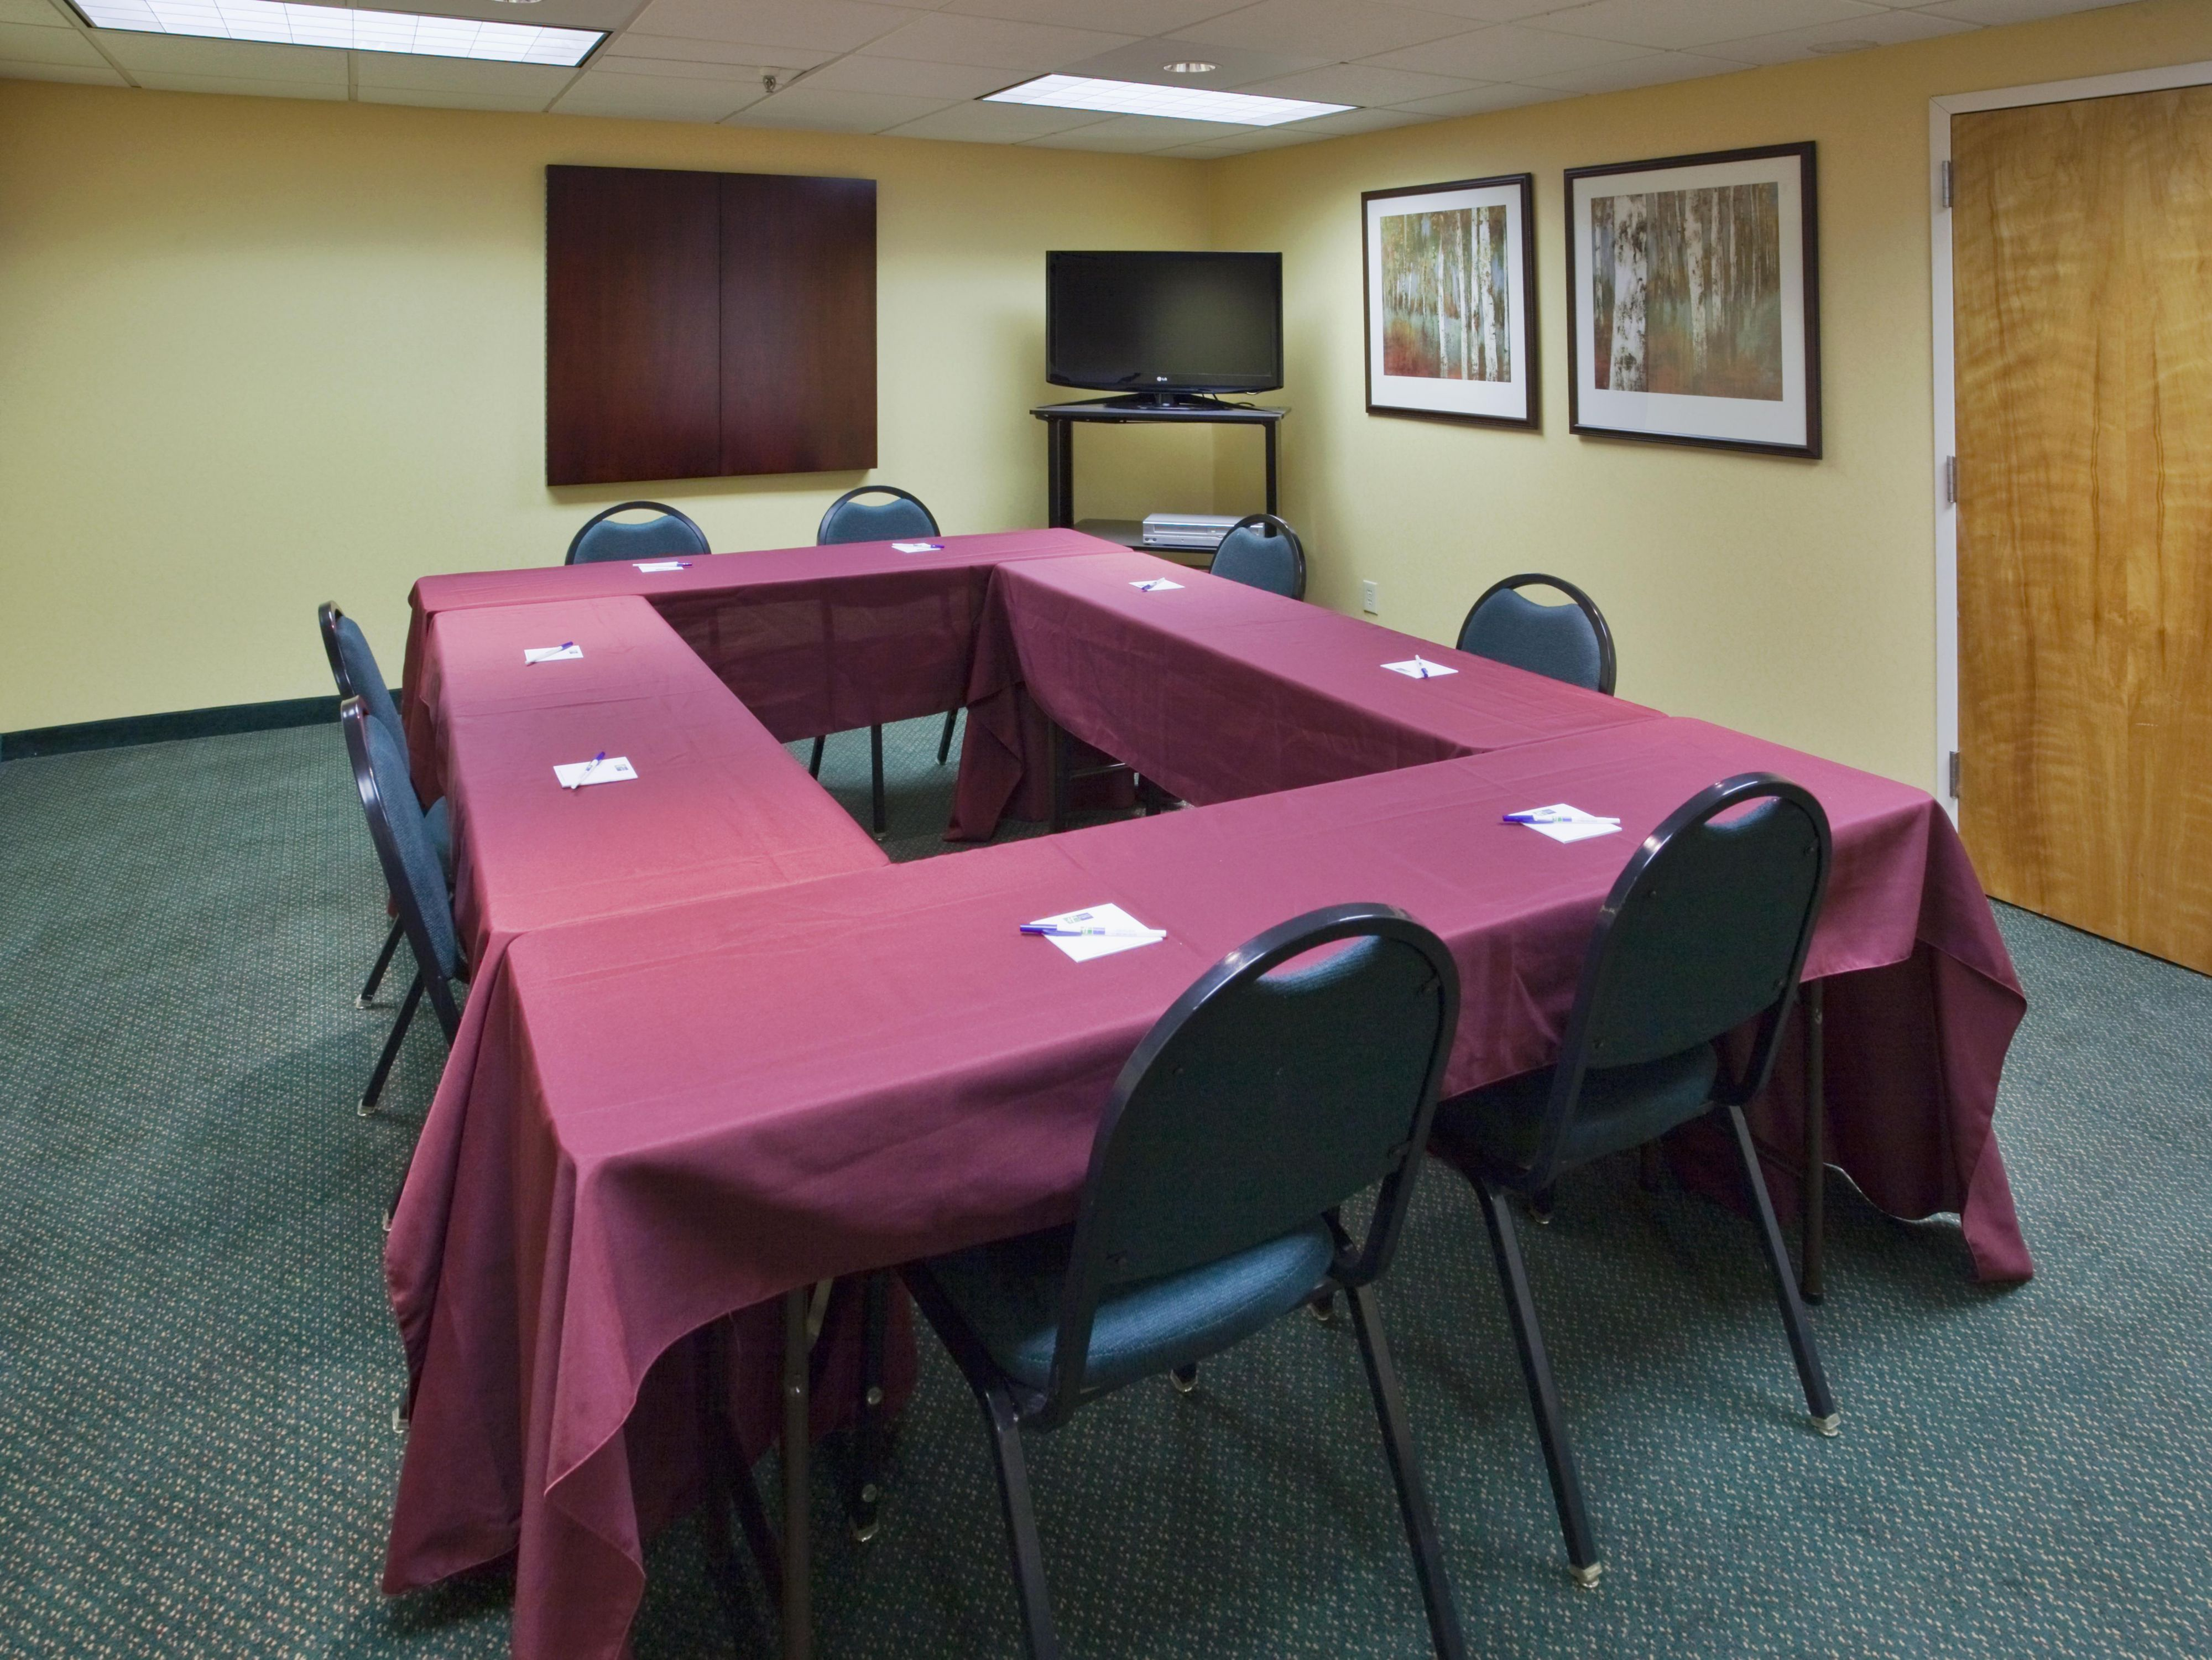 Our staff is ready to accommodate your meeting's needs